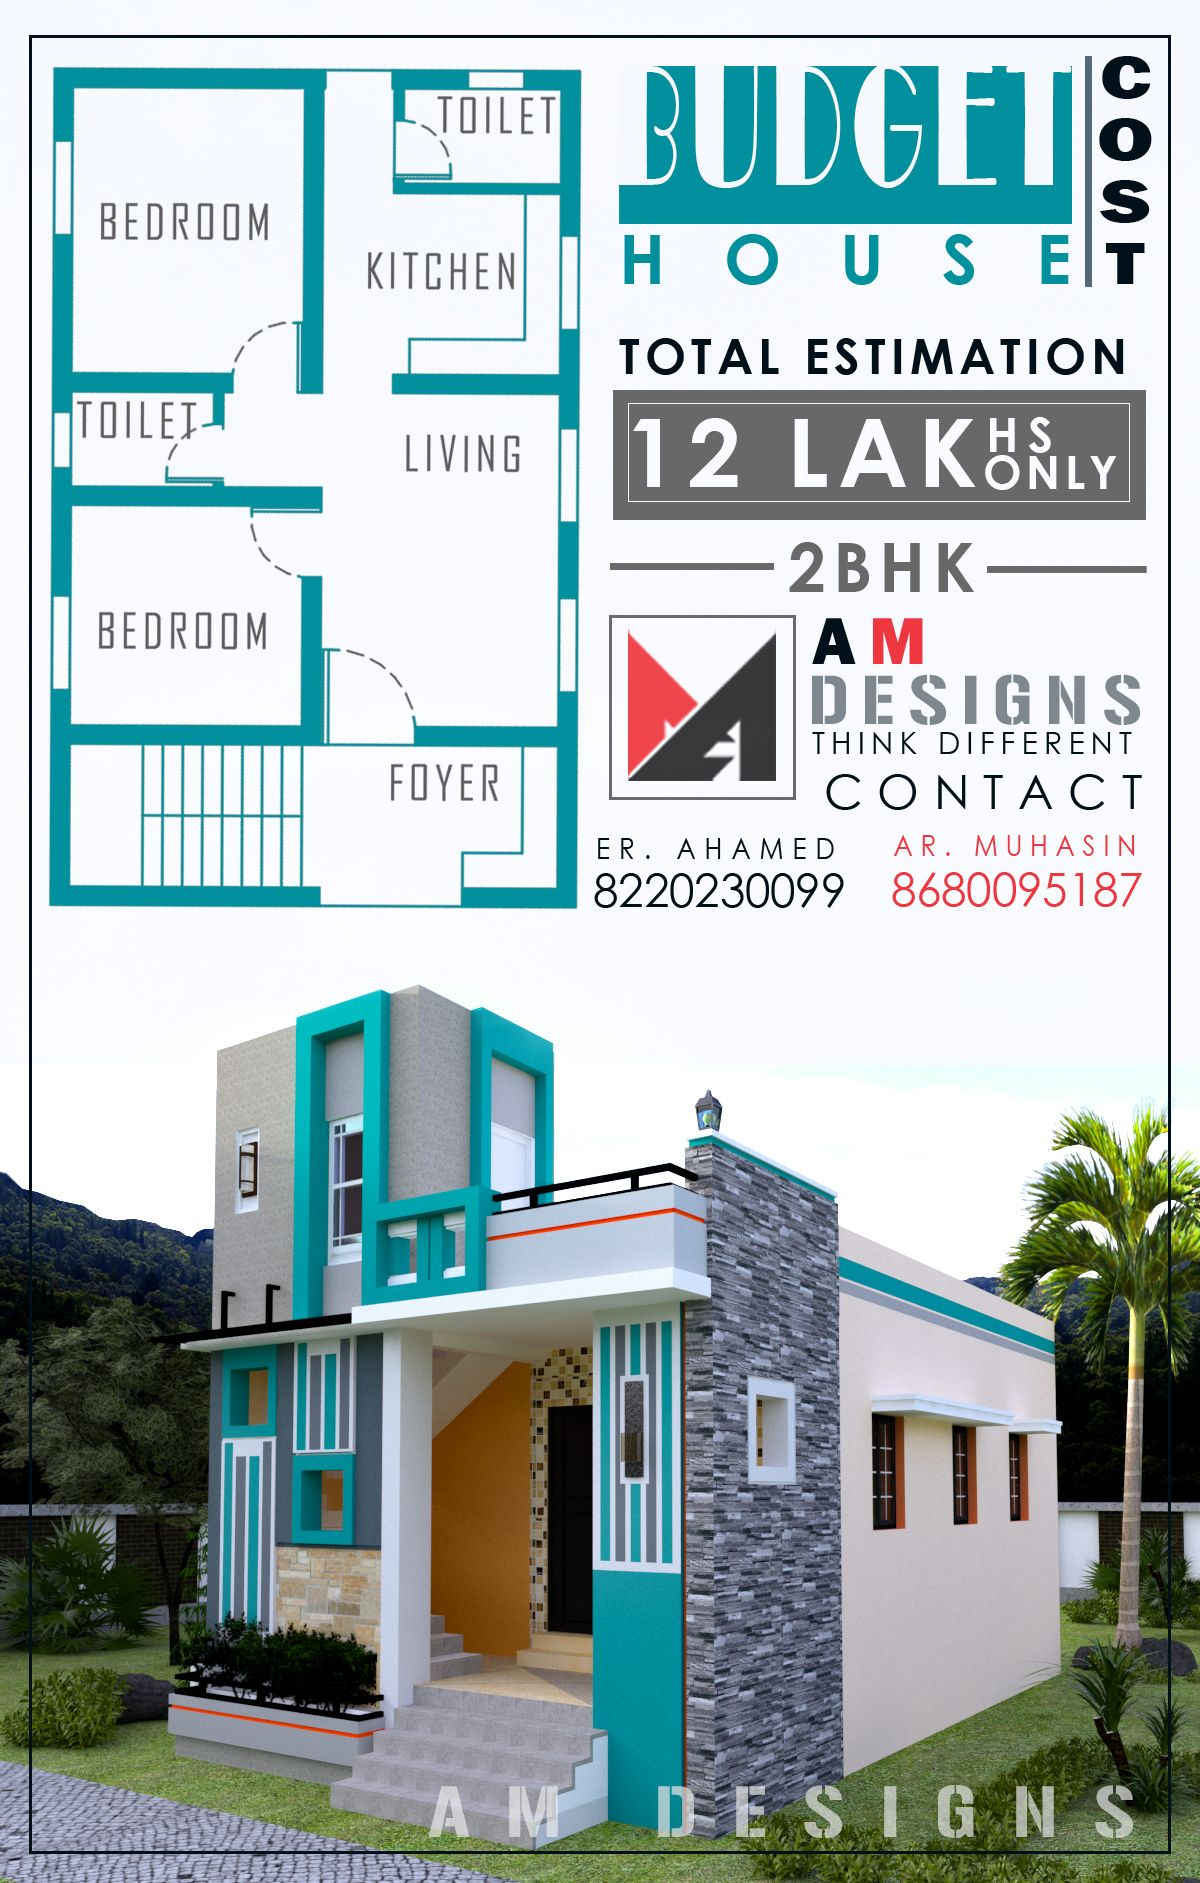 21 X 35 Tamil Nadu Home Design Photo House Design Photos Kerala House Design Low Budget House This list of bsnl tamilnadu recharge offers and tariff plans are updated on 25th march, 2021. kerala house design low budget house